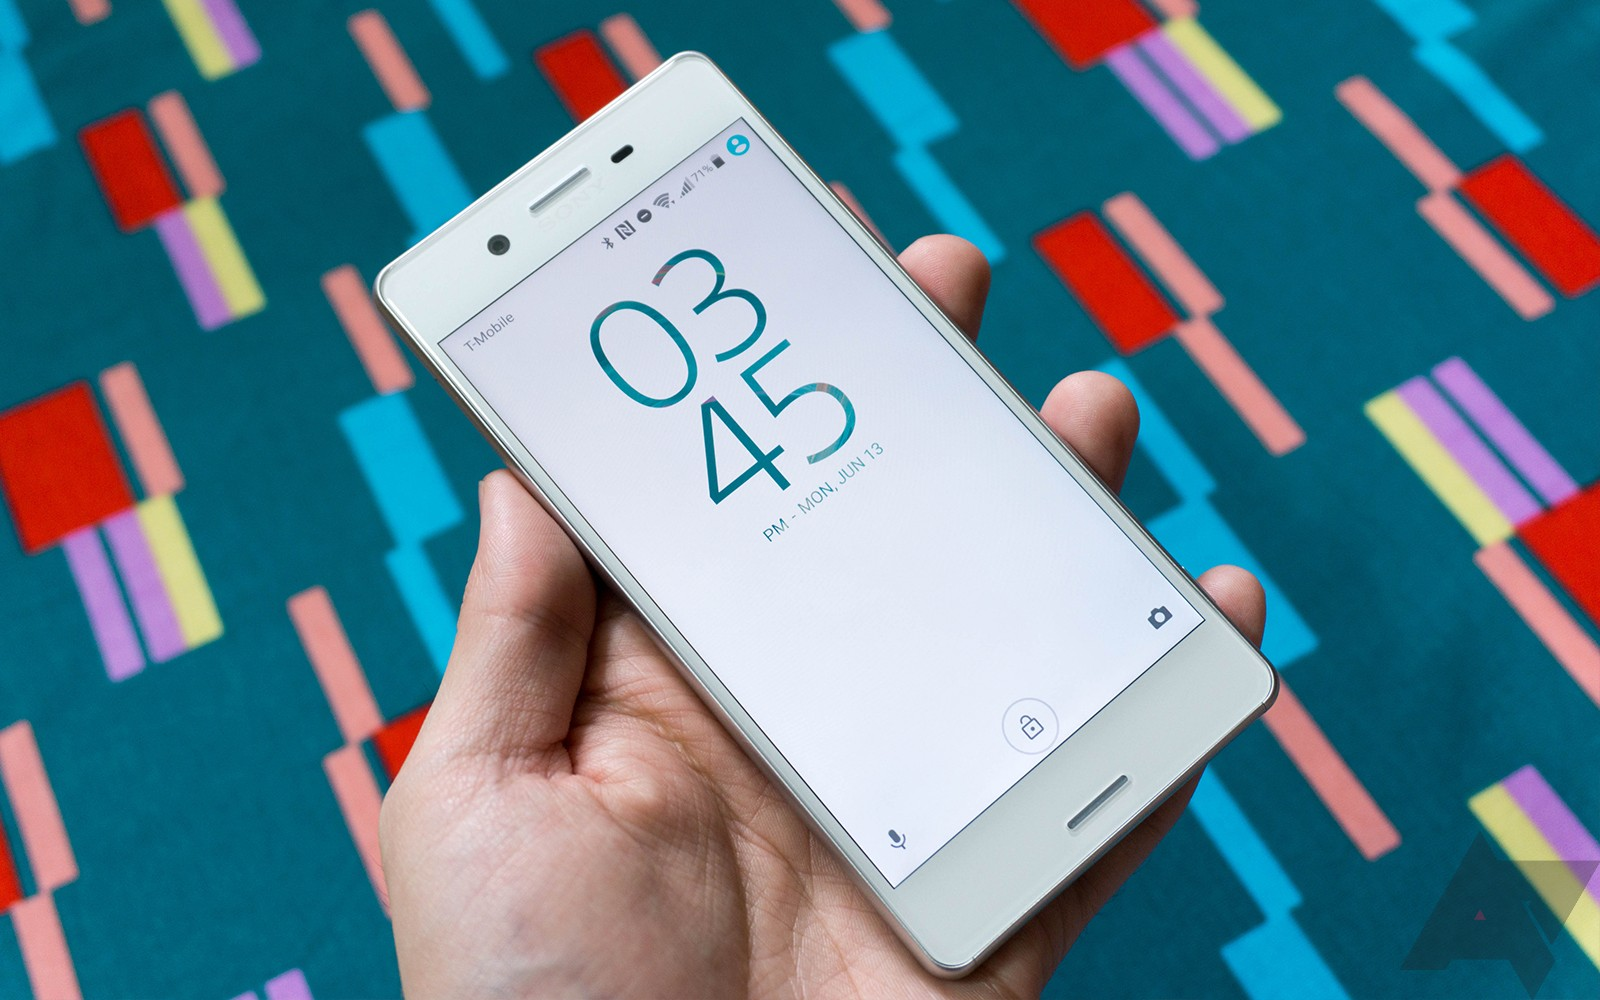 Android 8.0 Oreo rolling out to Sony Xperia X and X Compact